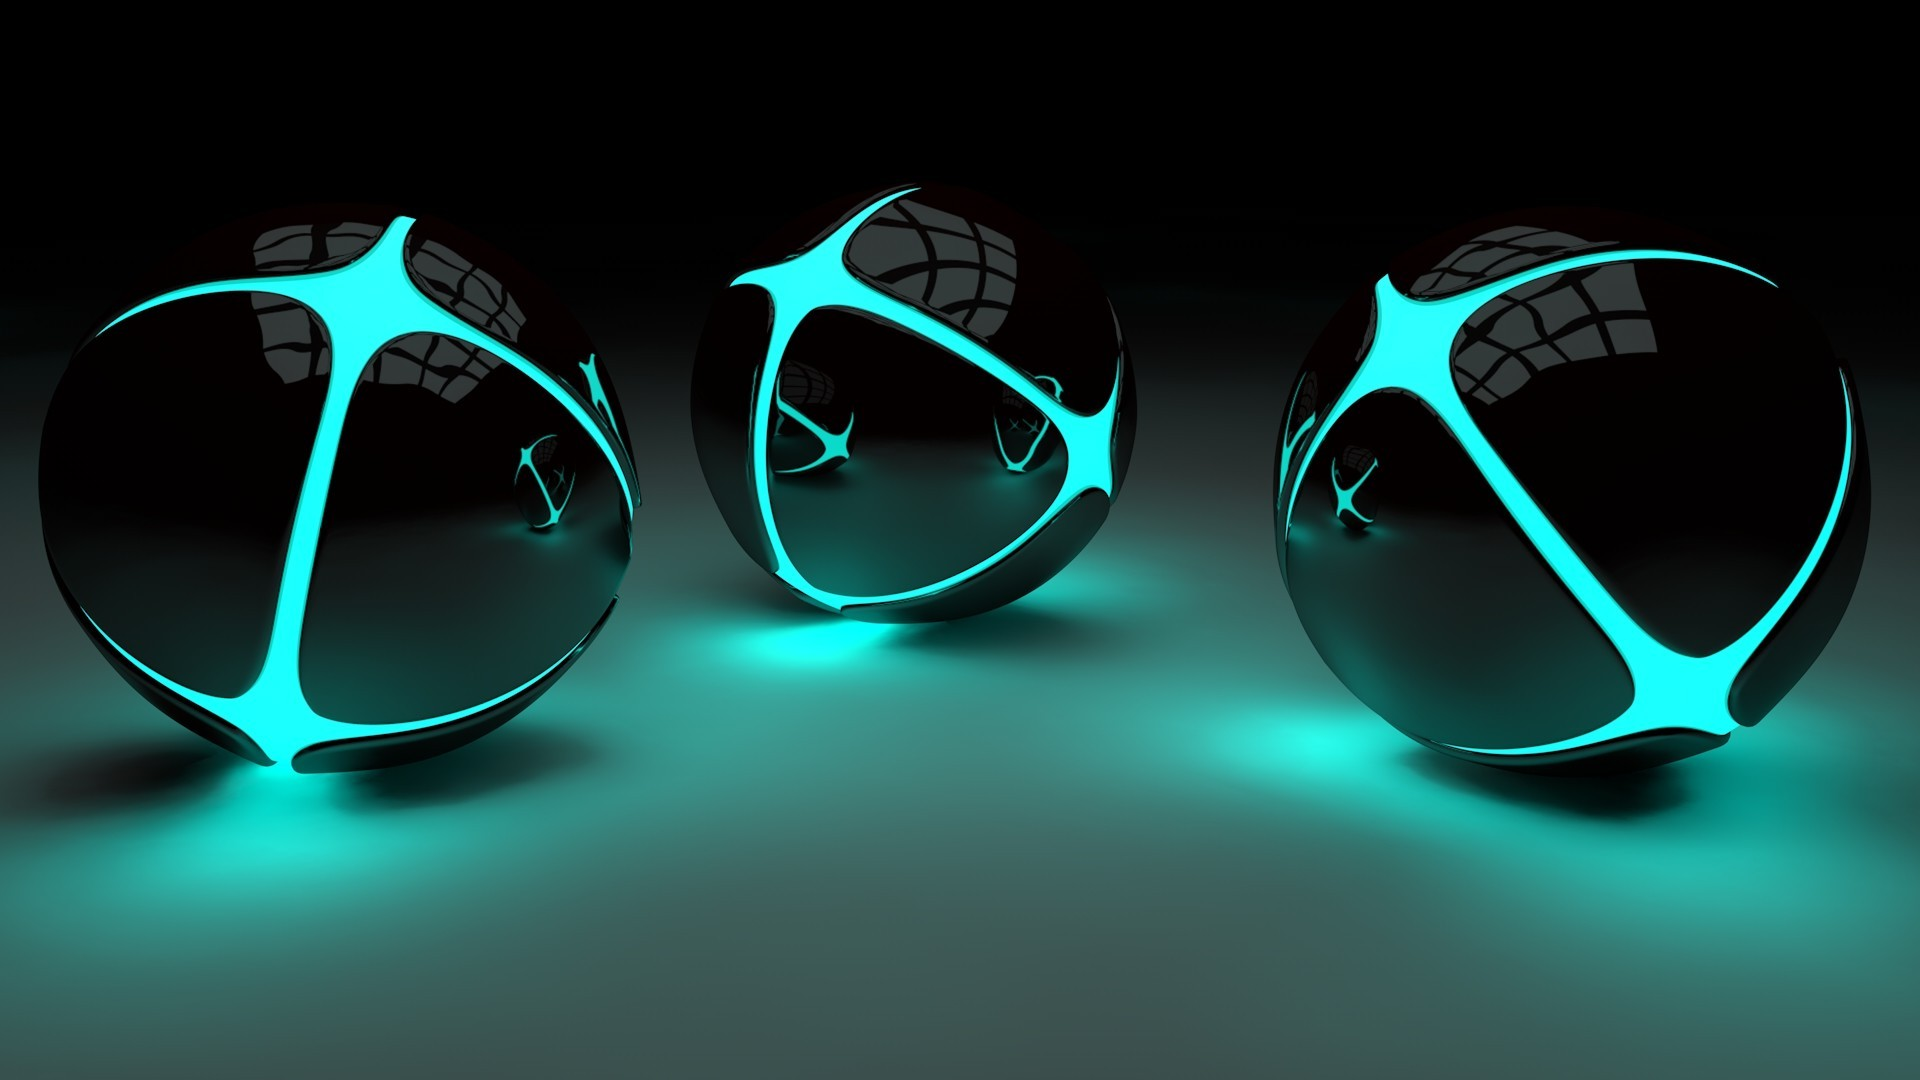 3d, glowing, ball, lights, minimalism wallpapers hd / desktop and